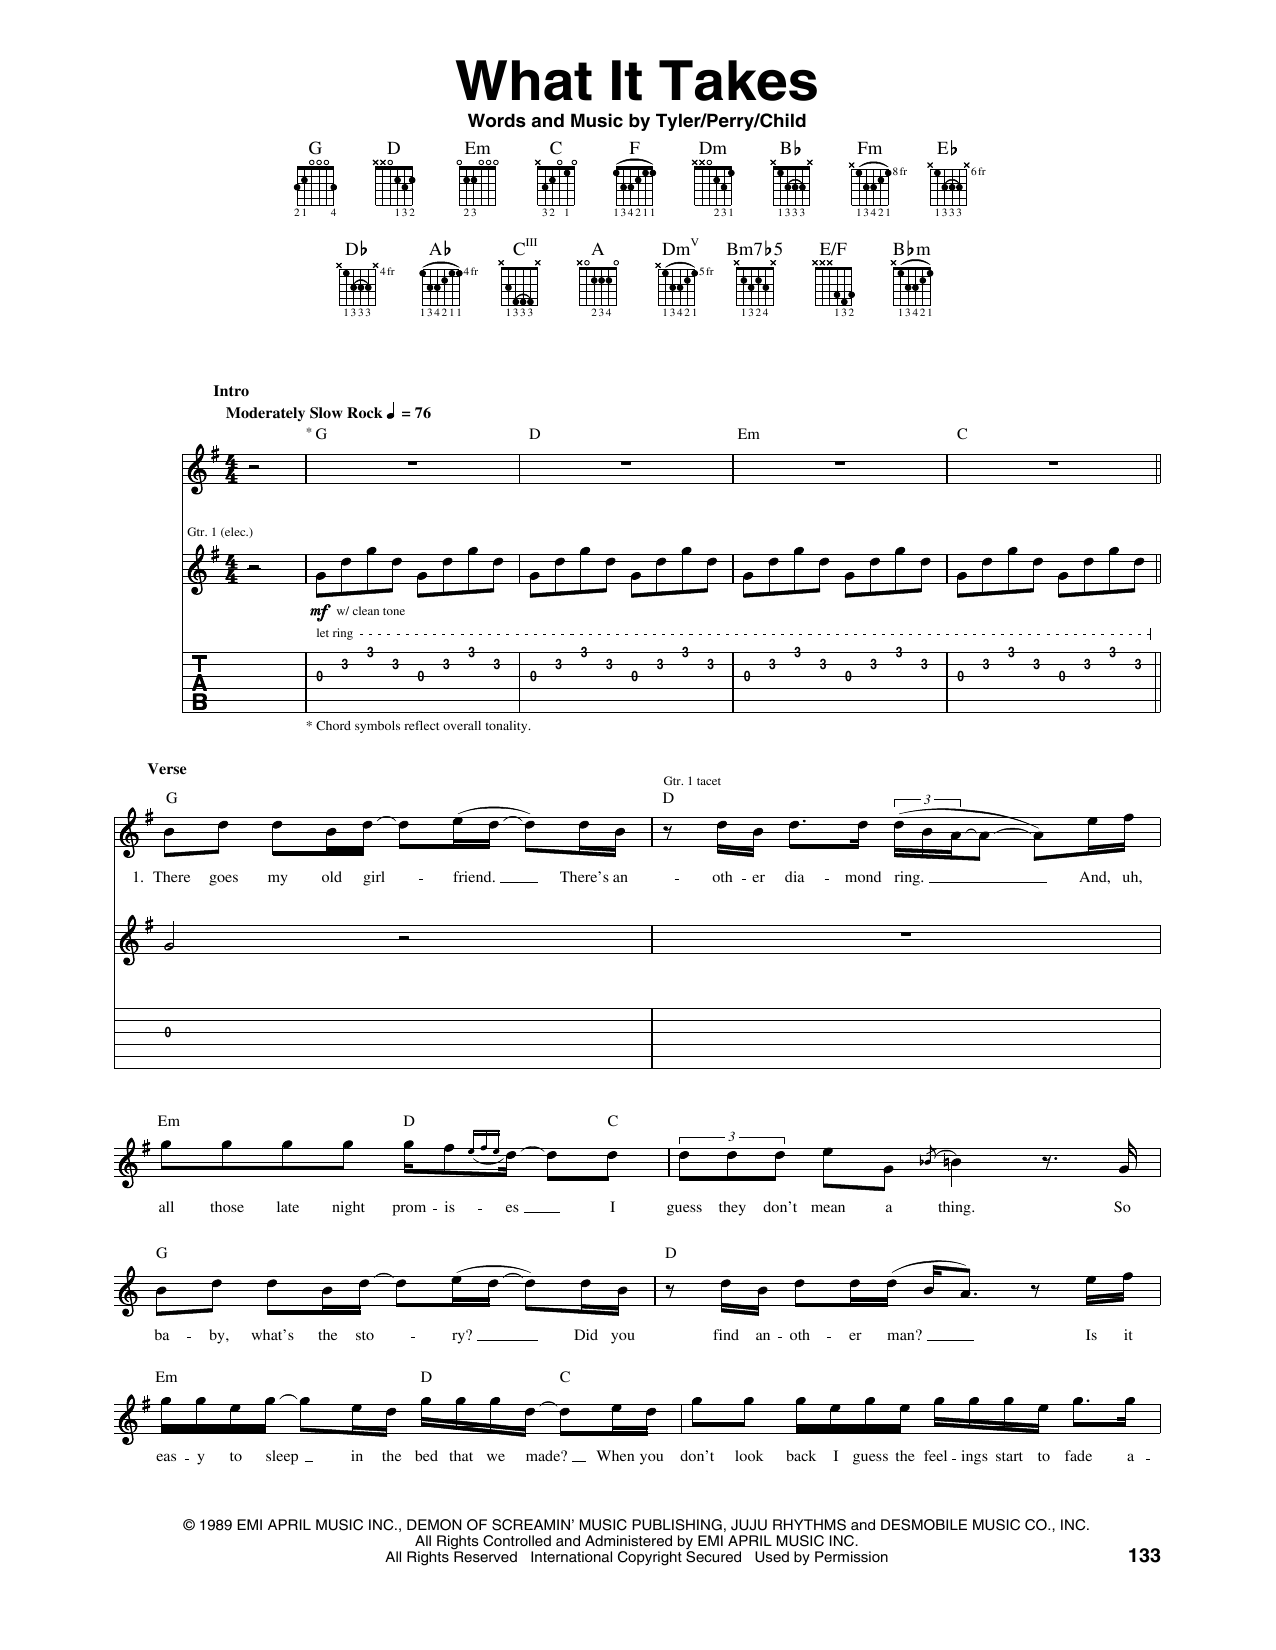 What It Takes Sheet Music